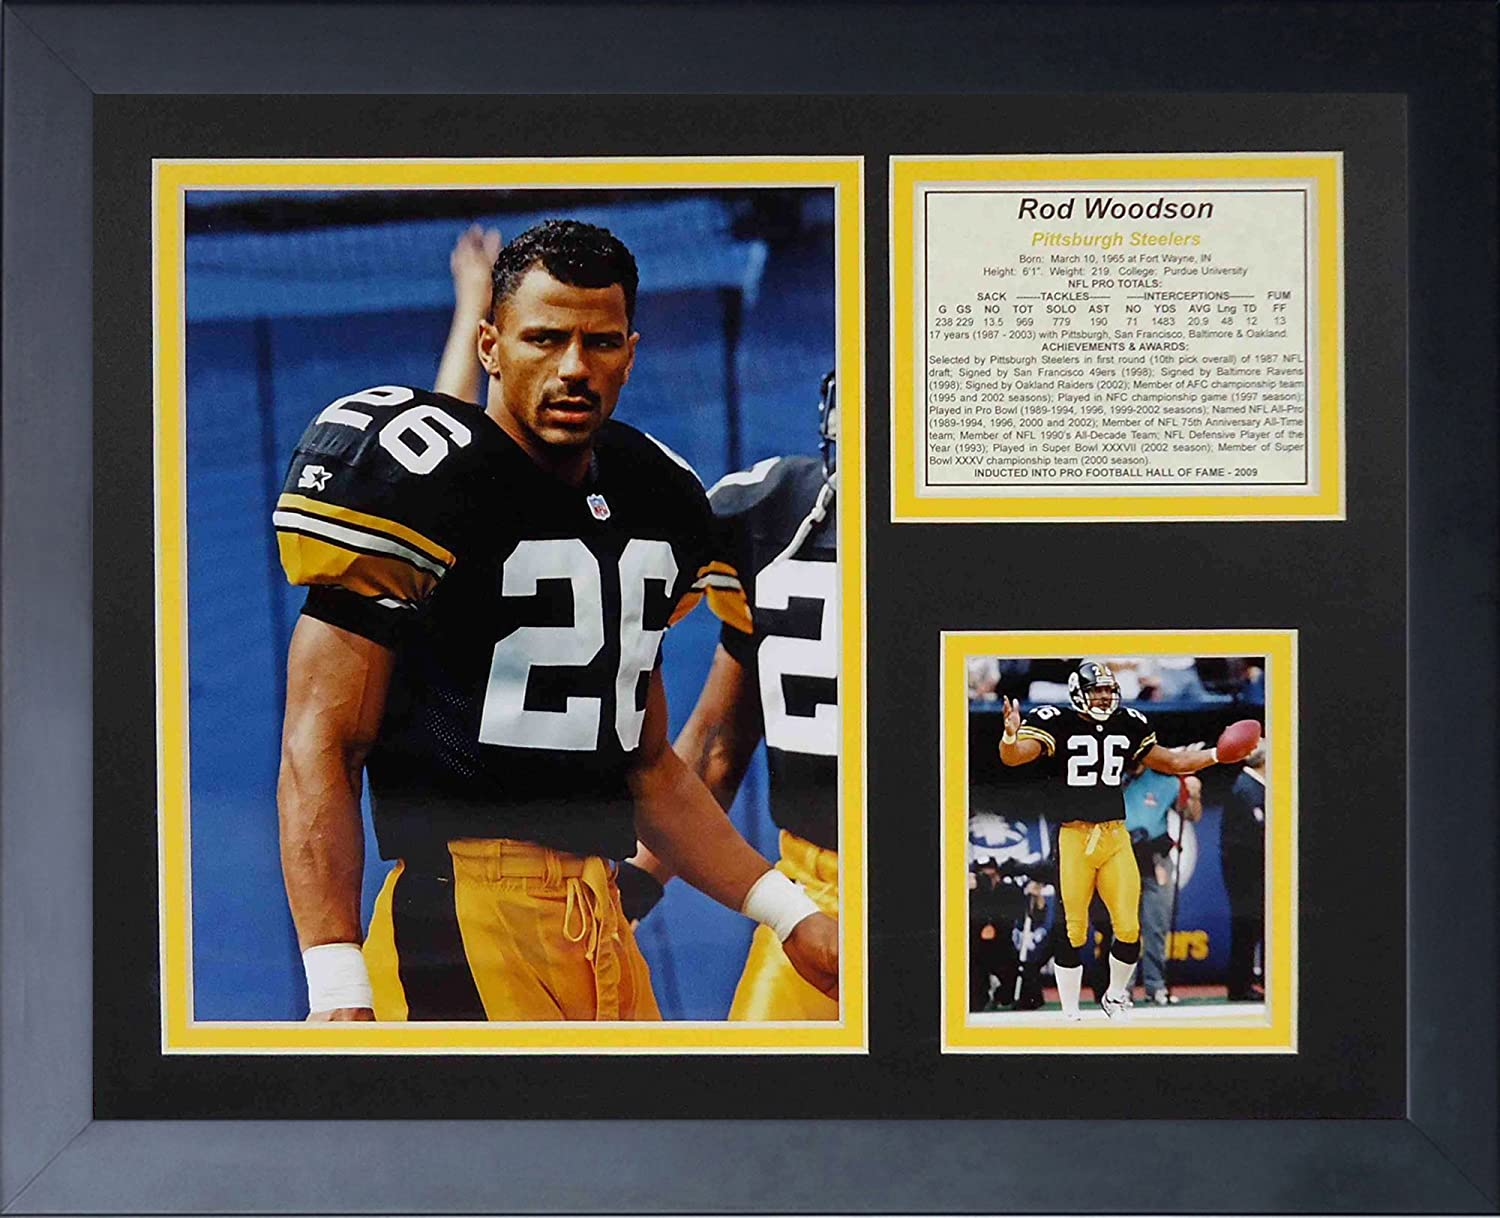 Legends Never Die Rod Woodson Framed Photo Collage, 11x14Inch